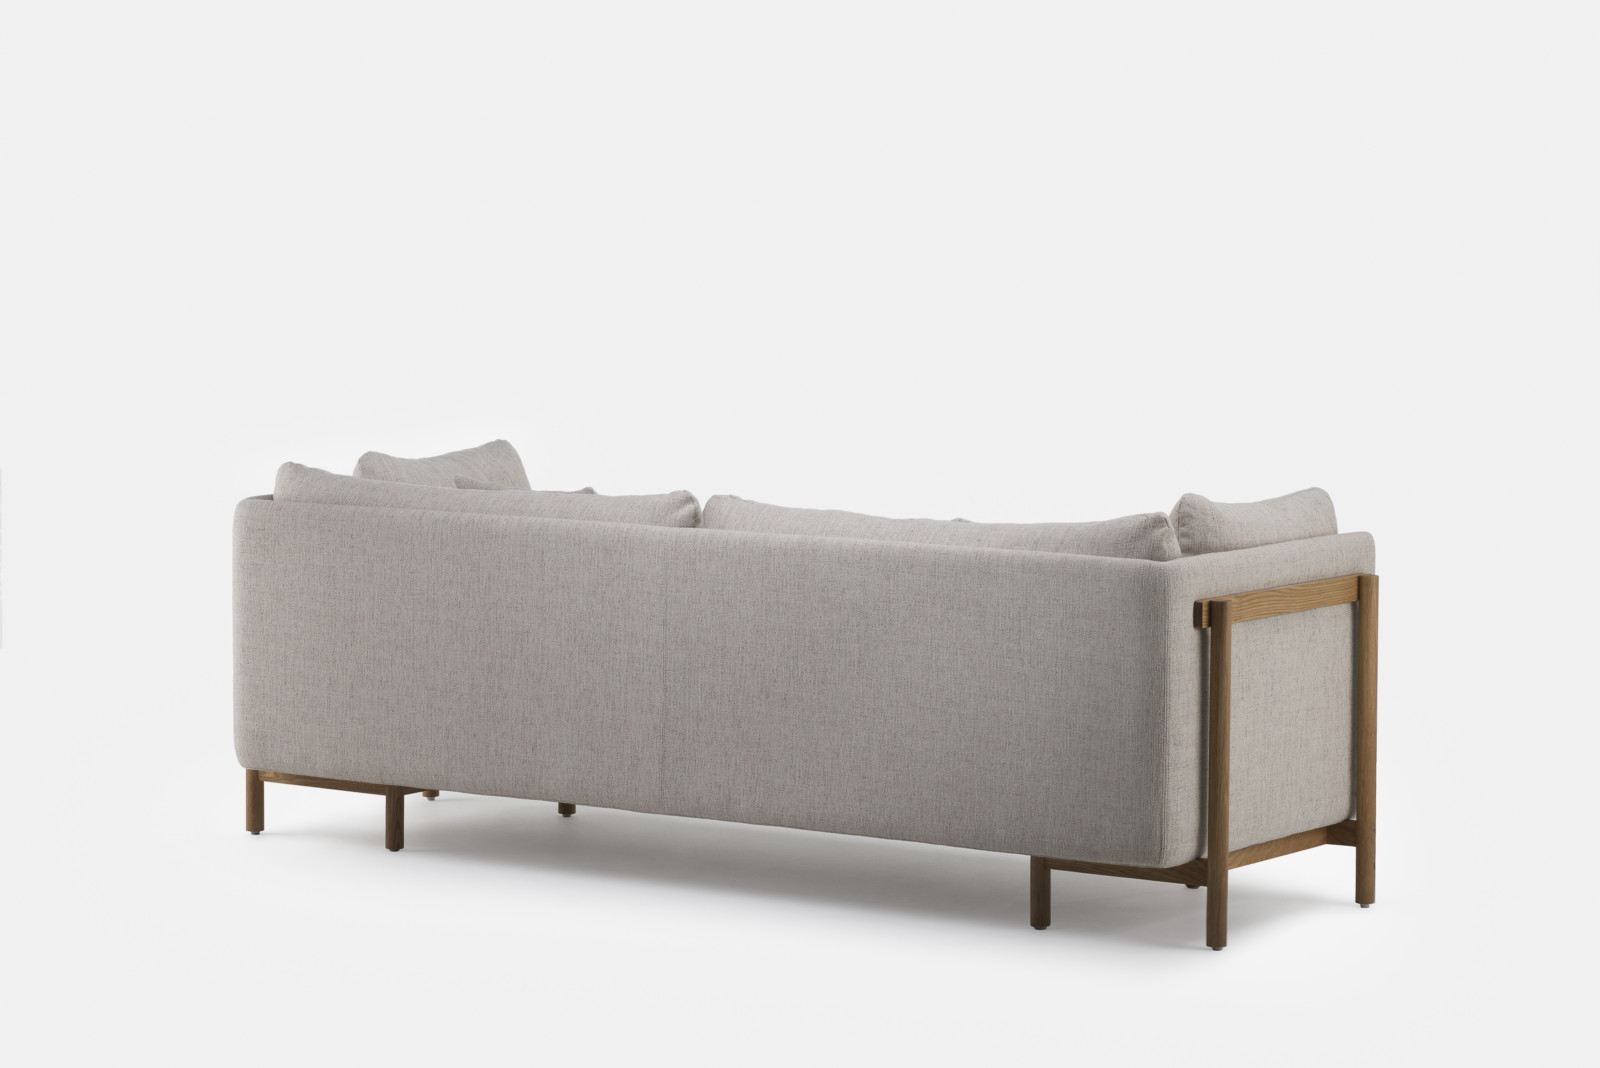 Couch Boxspring Frame Sofa With Arms